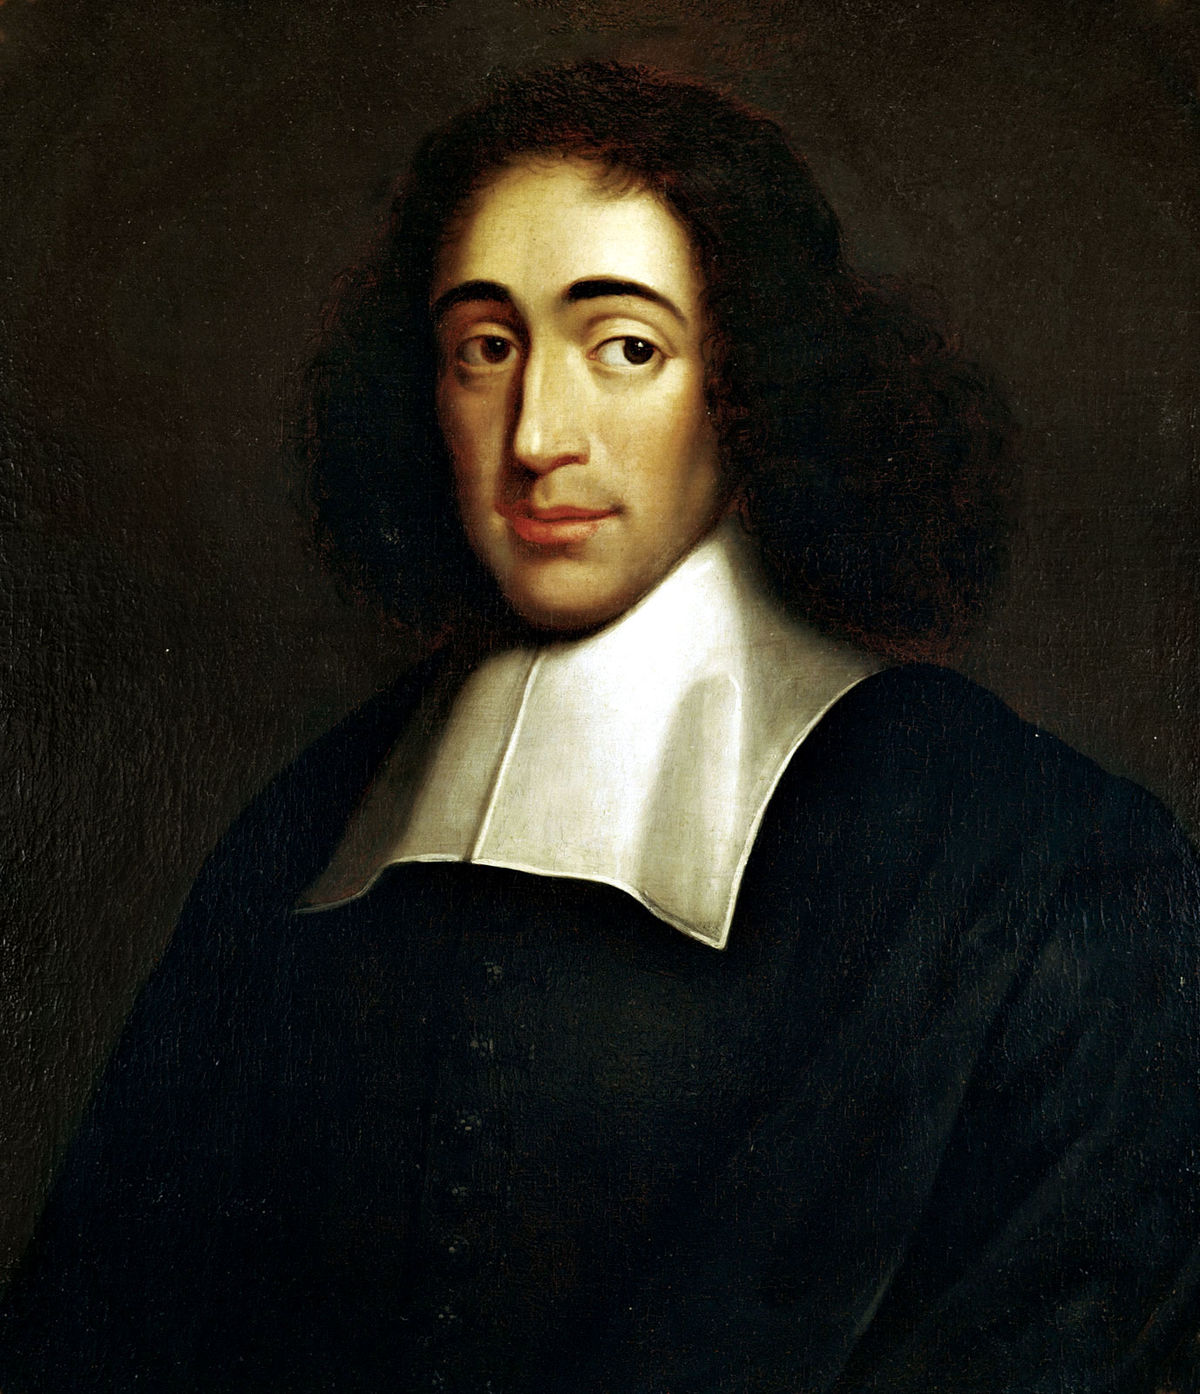 benedictus de spinoza view the god is all Benedictus de spinoza (24 november 1632 - 21 february 1677) was a social and metaphysical philosopher famous for the elaborate development of his monist philosophy, which has become known as spinozism.